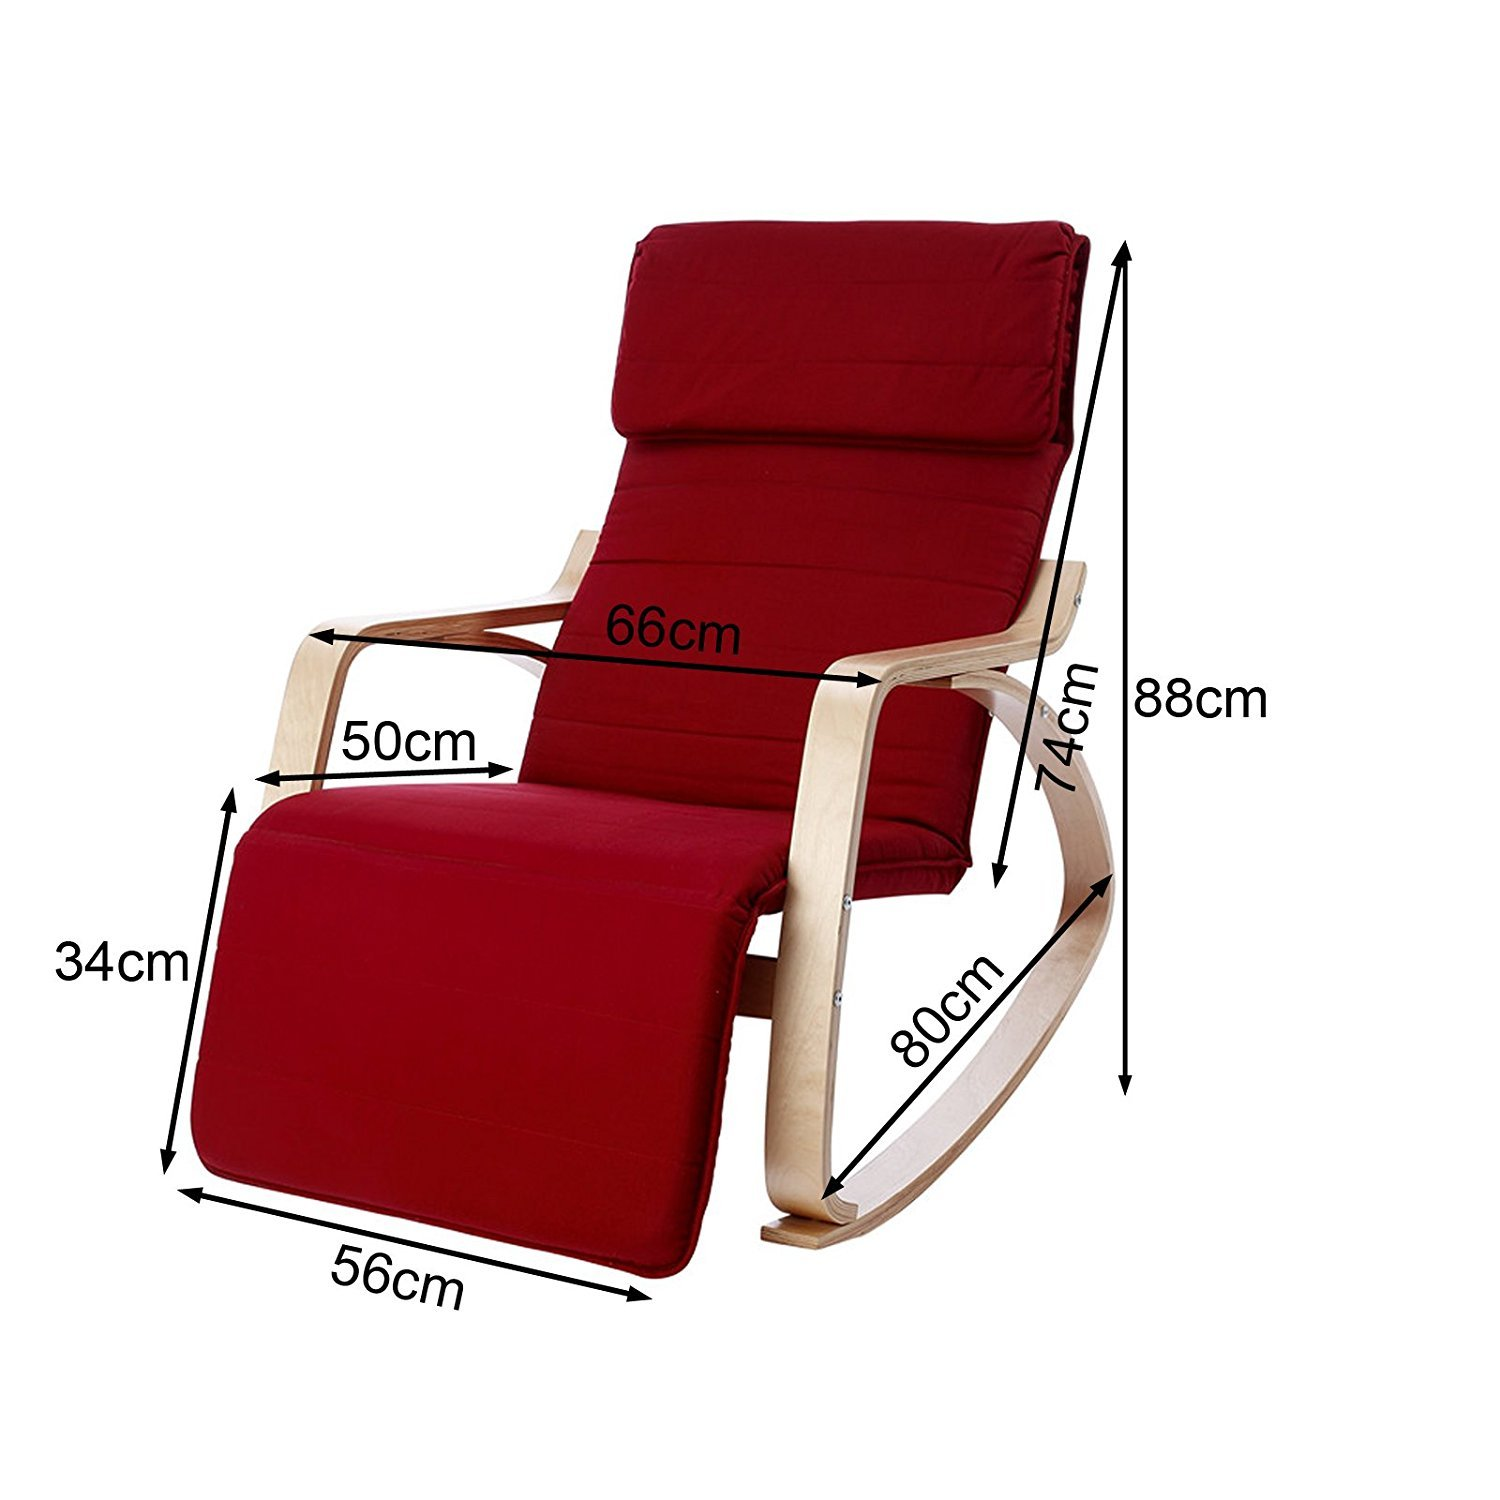 Haotian Comfortable Relax Rocking Chair with Foot Rest Design, Lounge Chair, Recliners Poly-cotton Fabric Cushion FST16 (black) by SoBuy (Image #3)